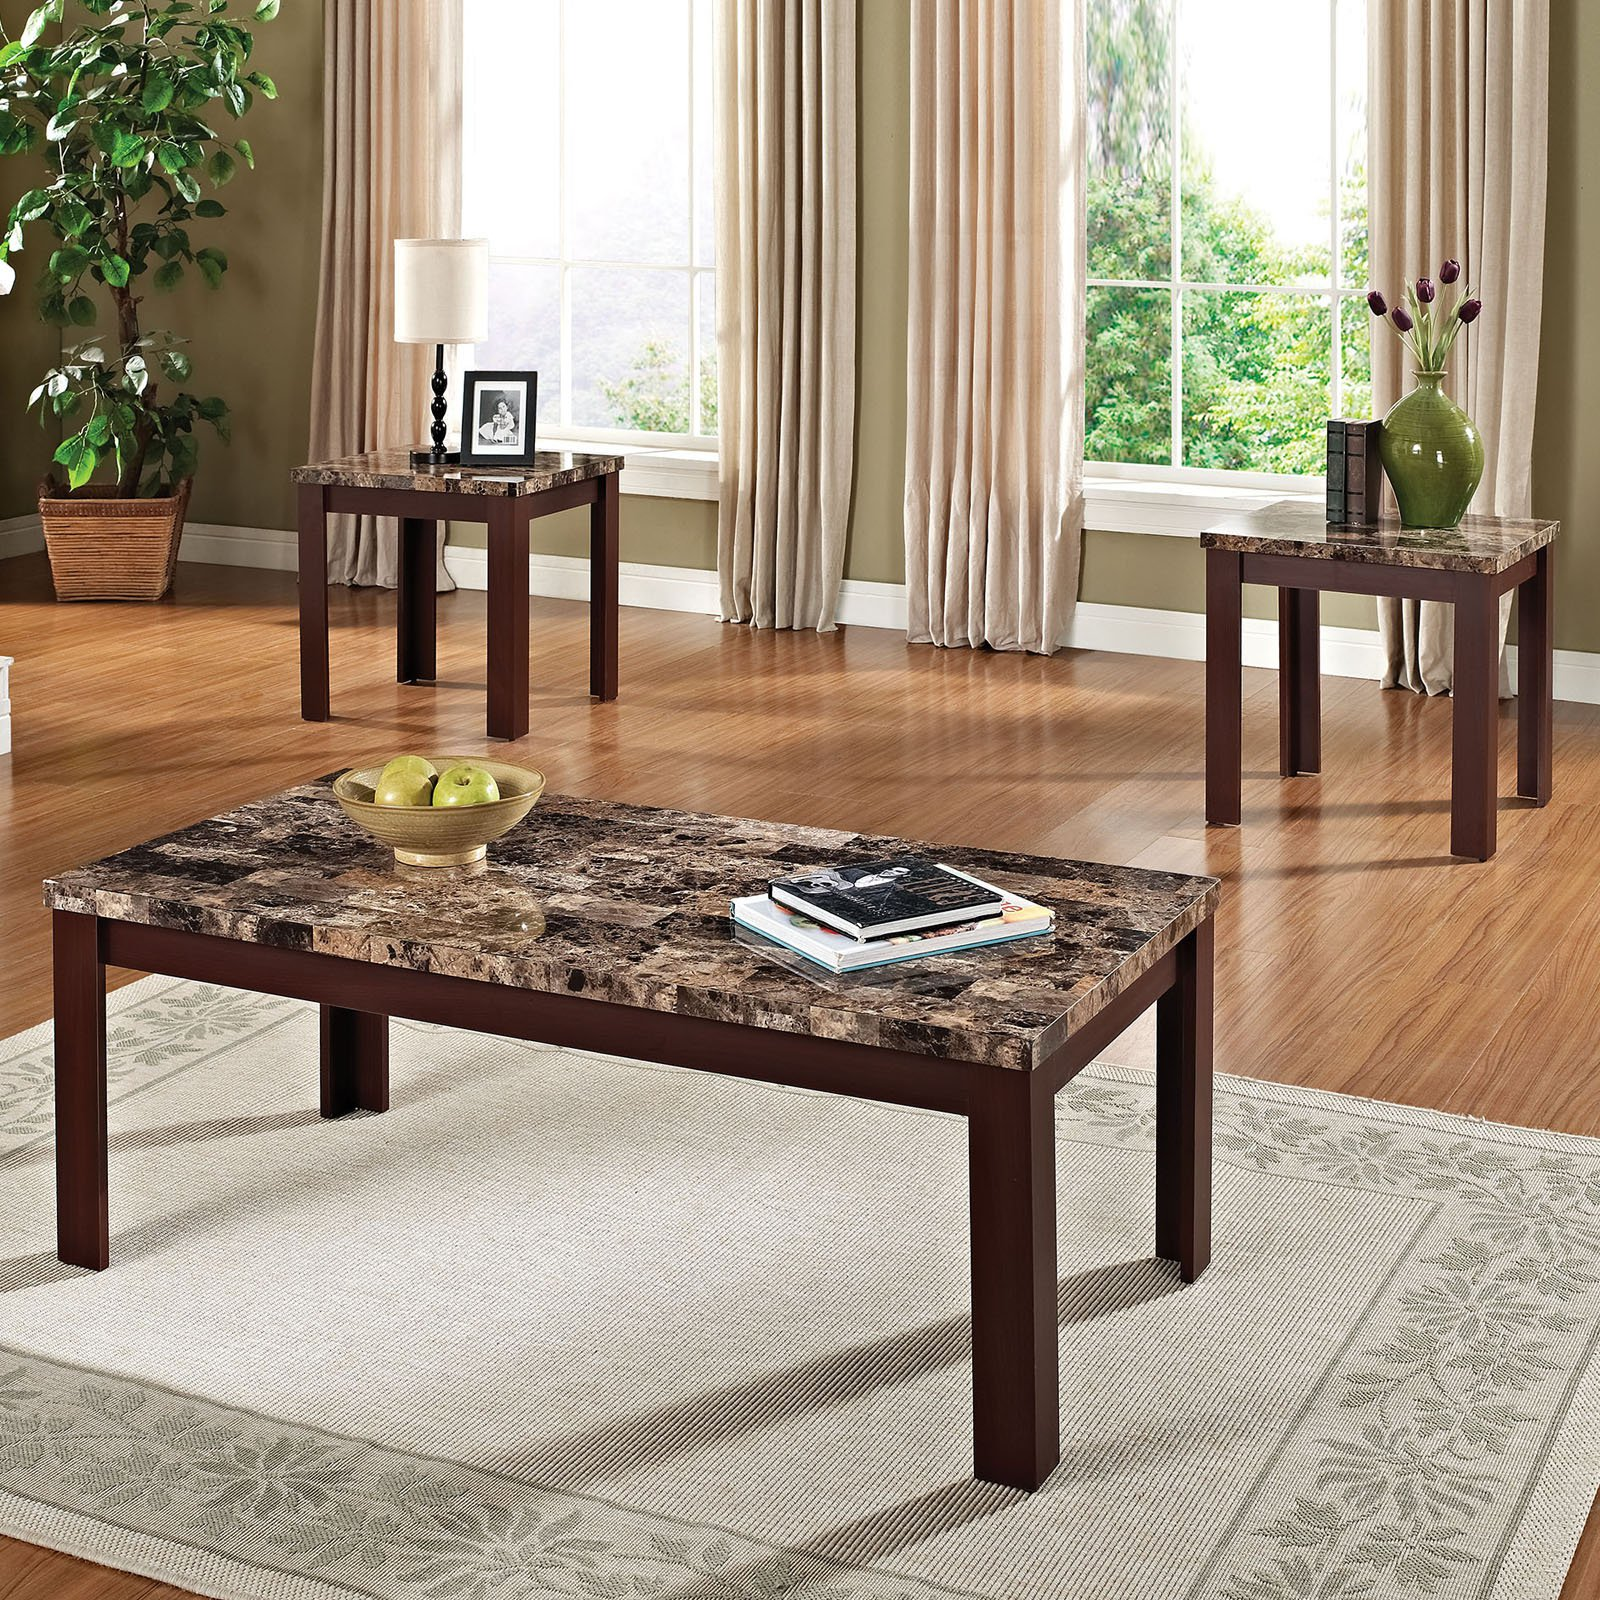 Faux Marble 3 Piece Coffee And End Table Set, Multiple Colors   Walmart.com